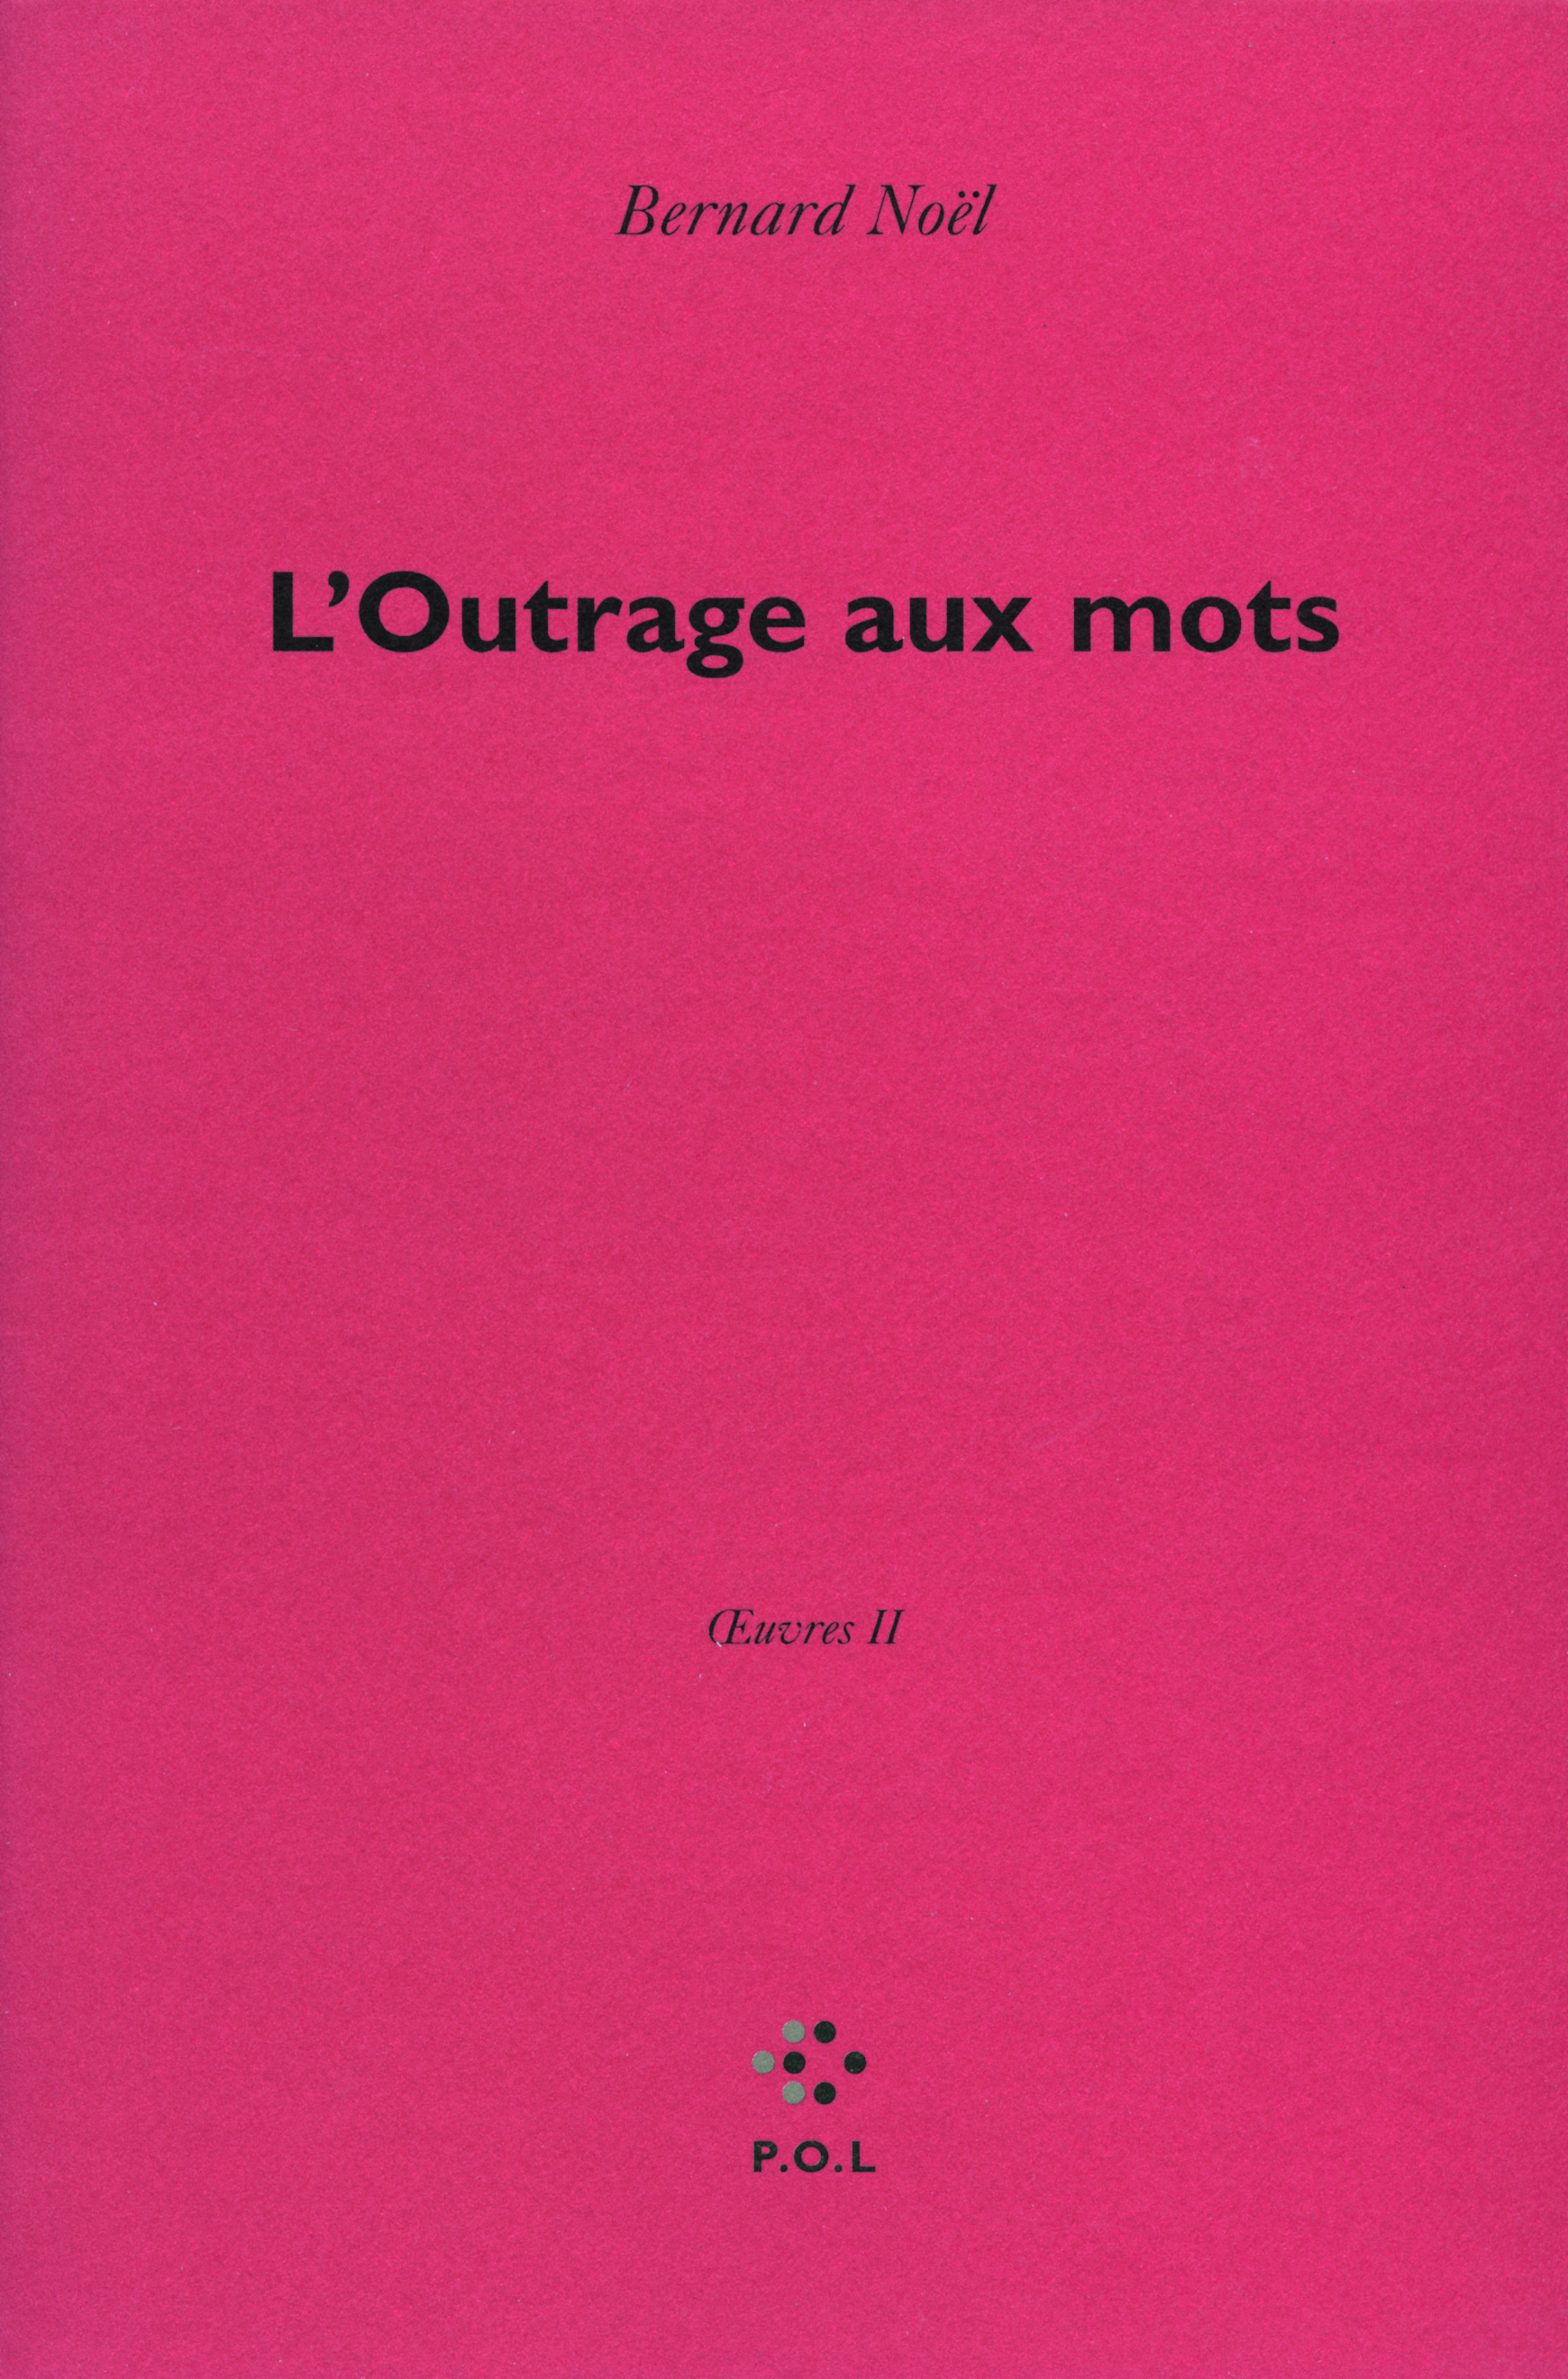 OEUVRES, II : L'OUTRAGE AUX MOTS